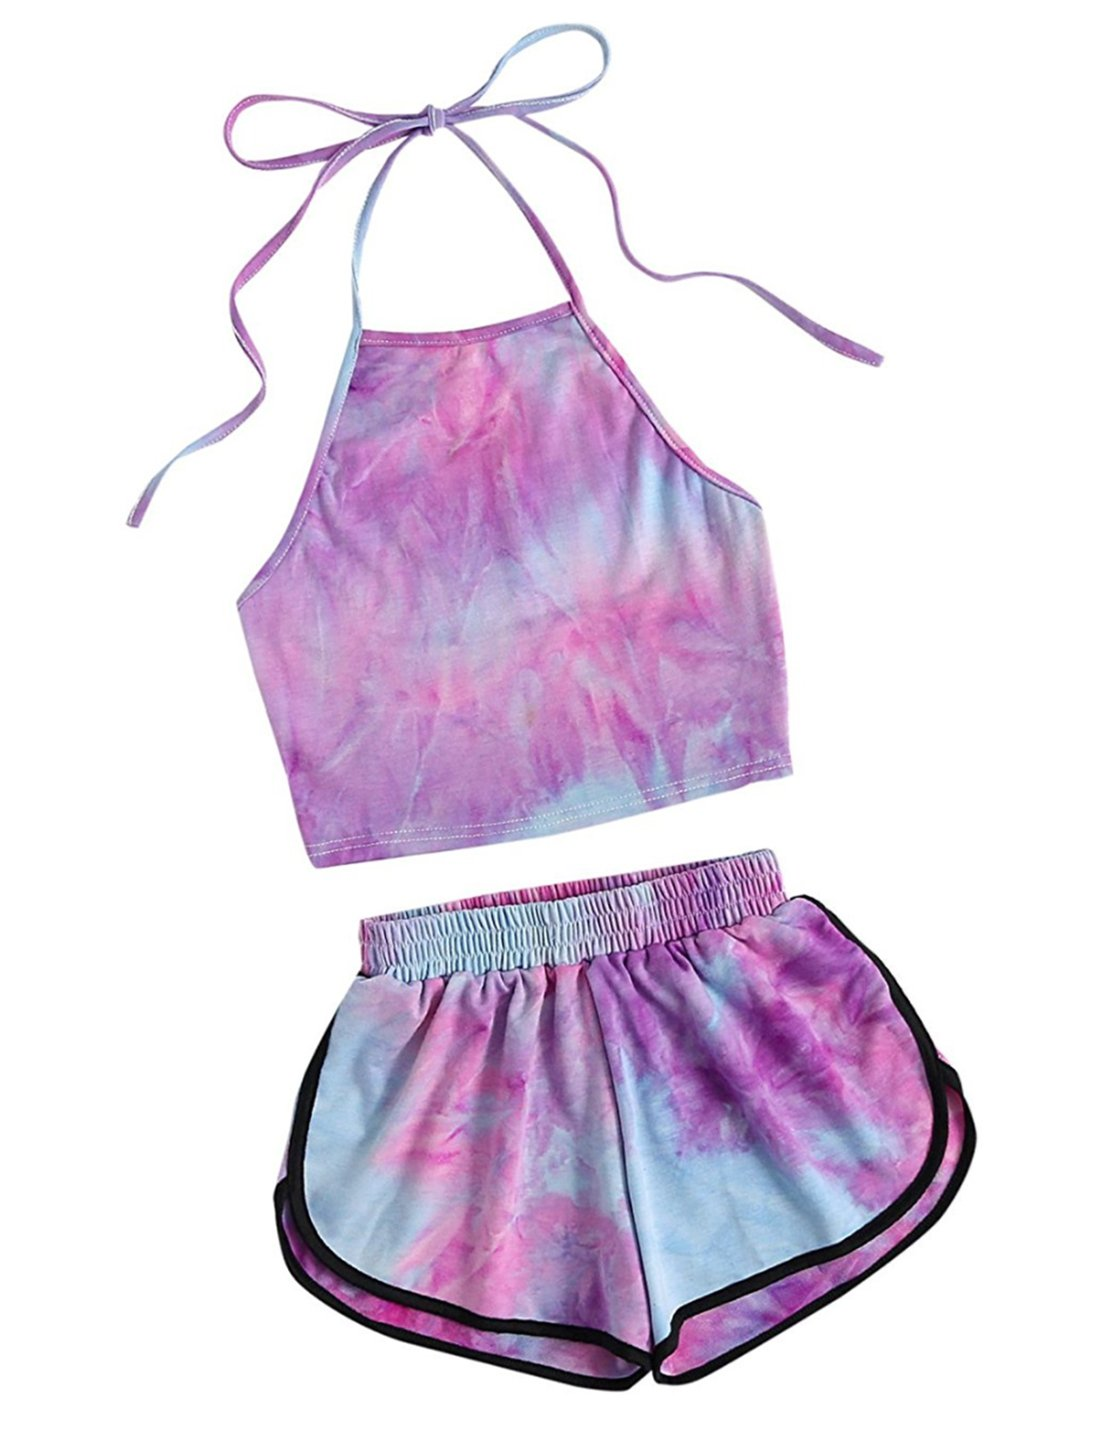 CAIYING Women's 2 Piece Set Halter Crop Top and Shorts Set for Beach